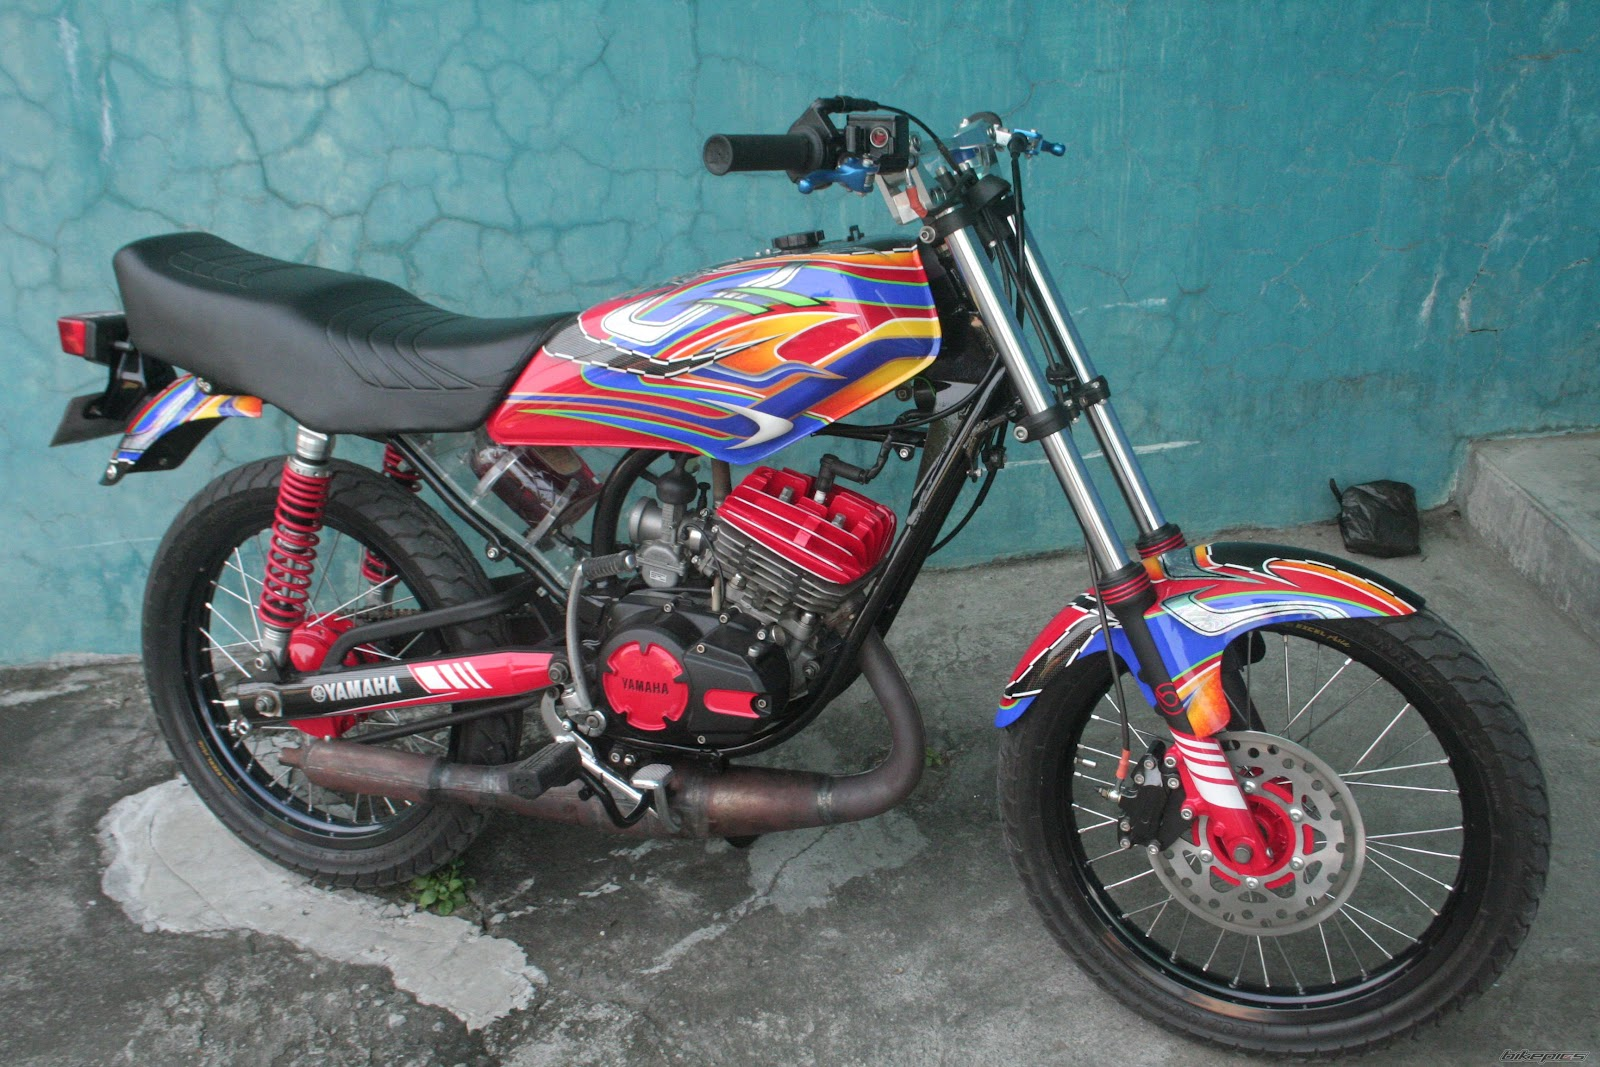 Modif Warna Yamaha Rx King